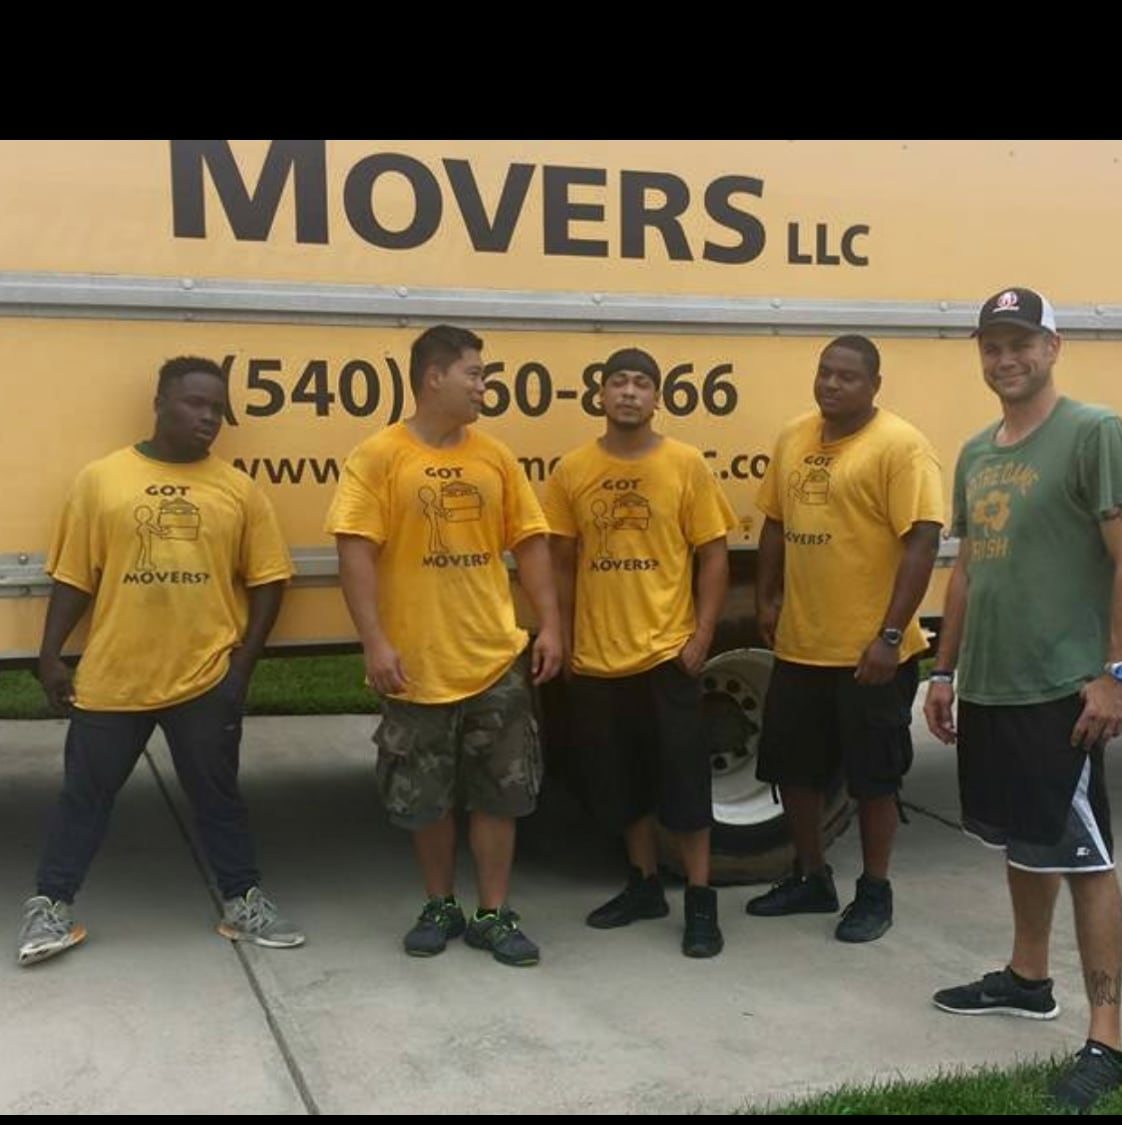 Duker's Movers LLC